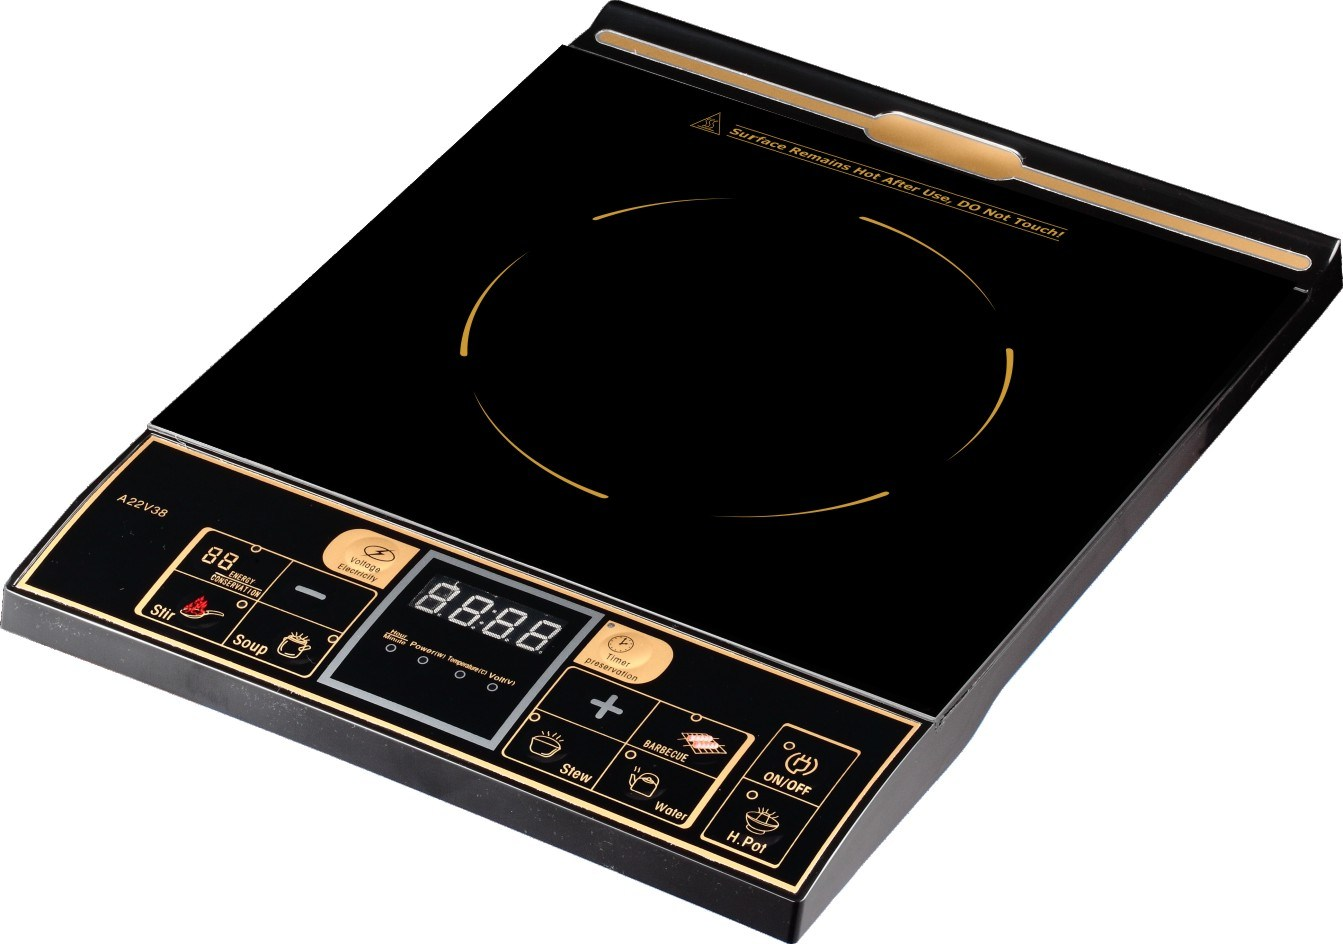 China Ktchen Appliance Electric Stamboat Induction Cooker Am22v38b Simple Heater Circuit Hot Plate Cookers